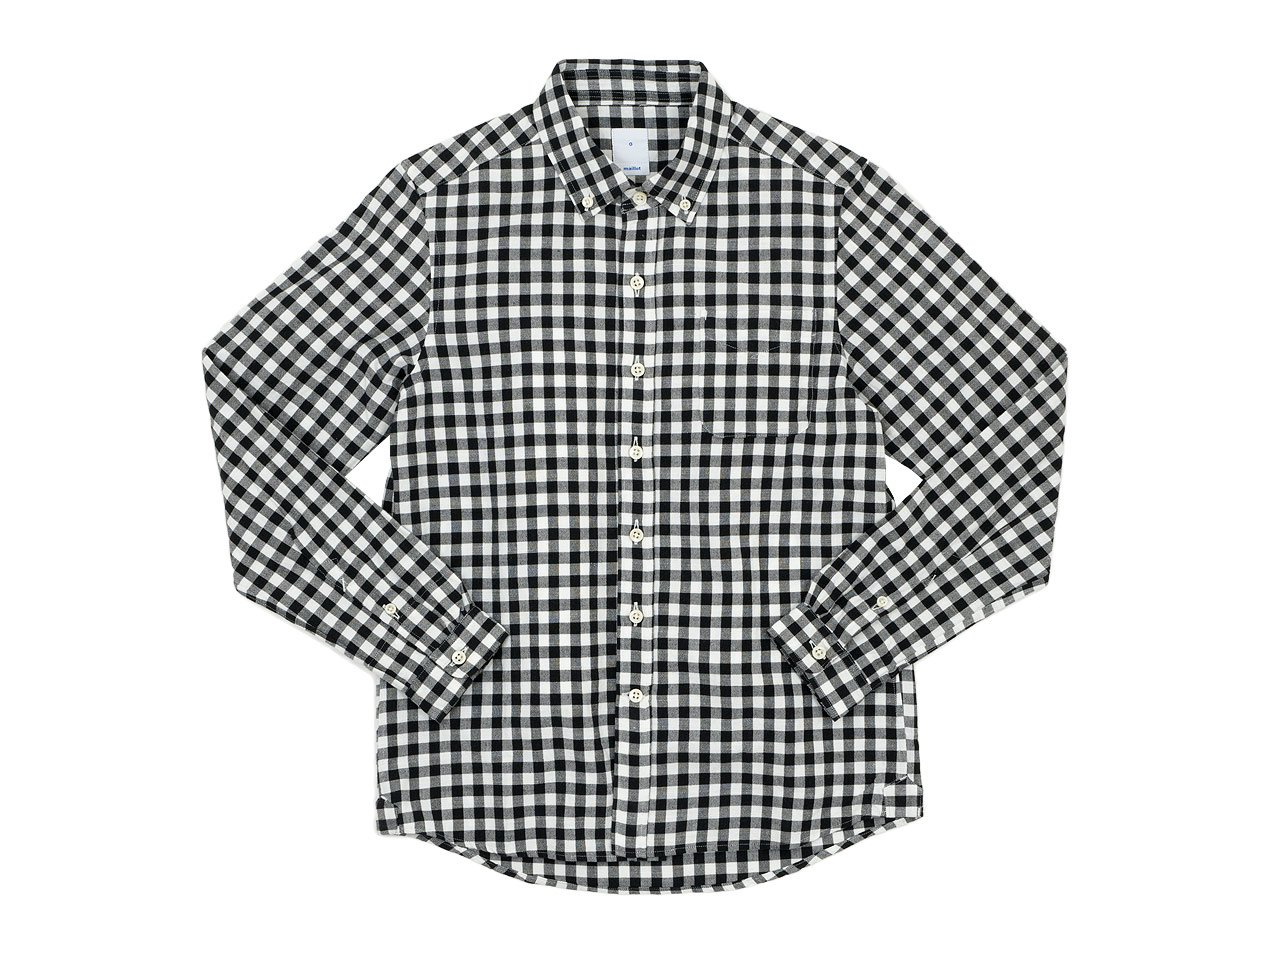 maillot sunset big gingham B.D. shirts BIG BLACK x WHITE